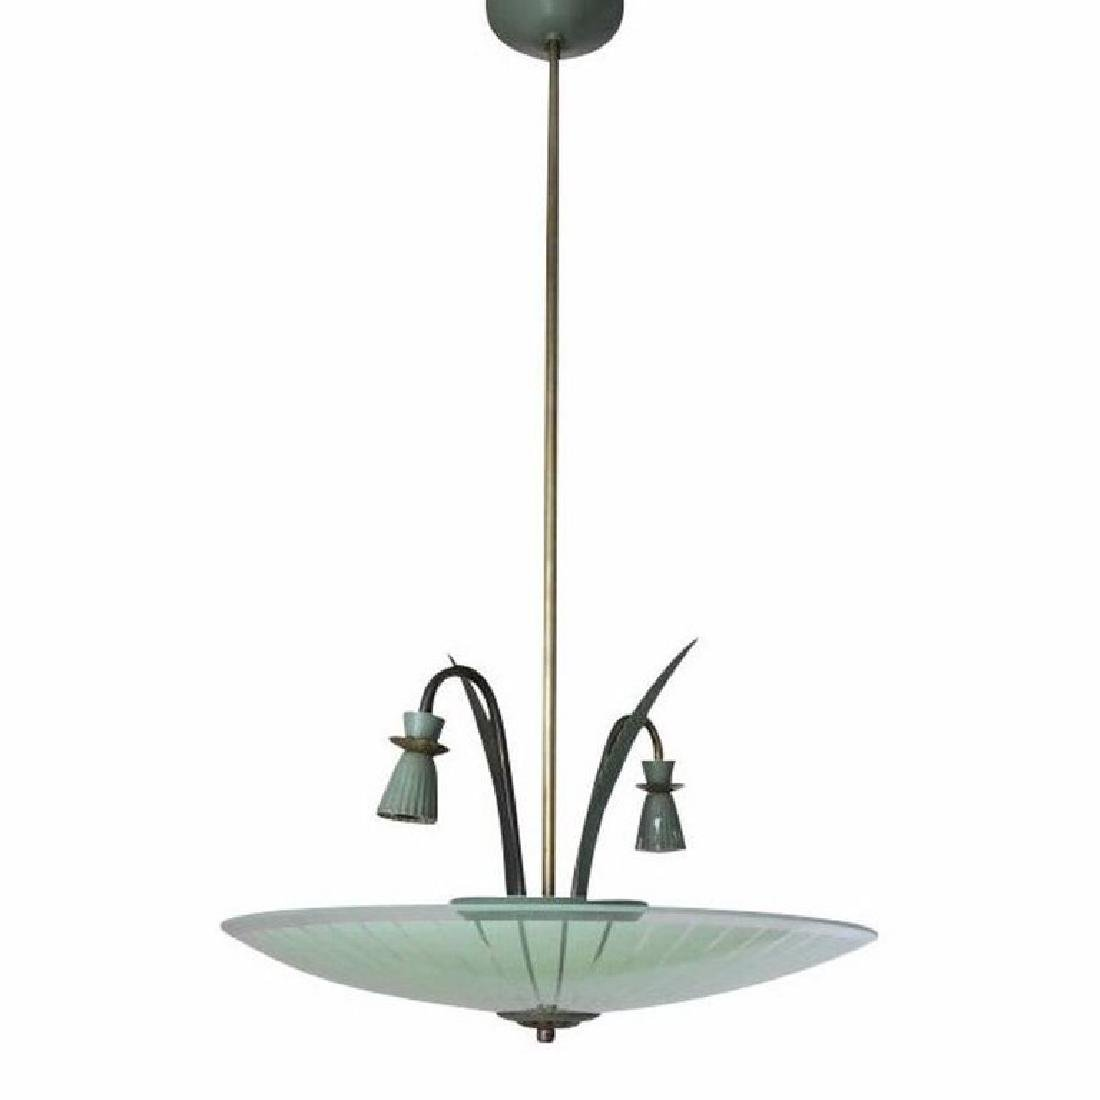 Italian Green Pendant by Stilnovo